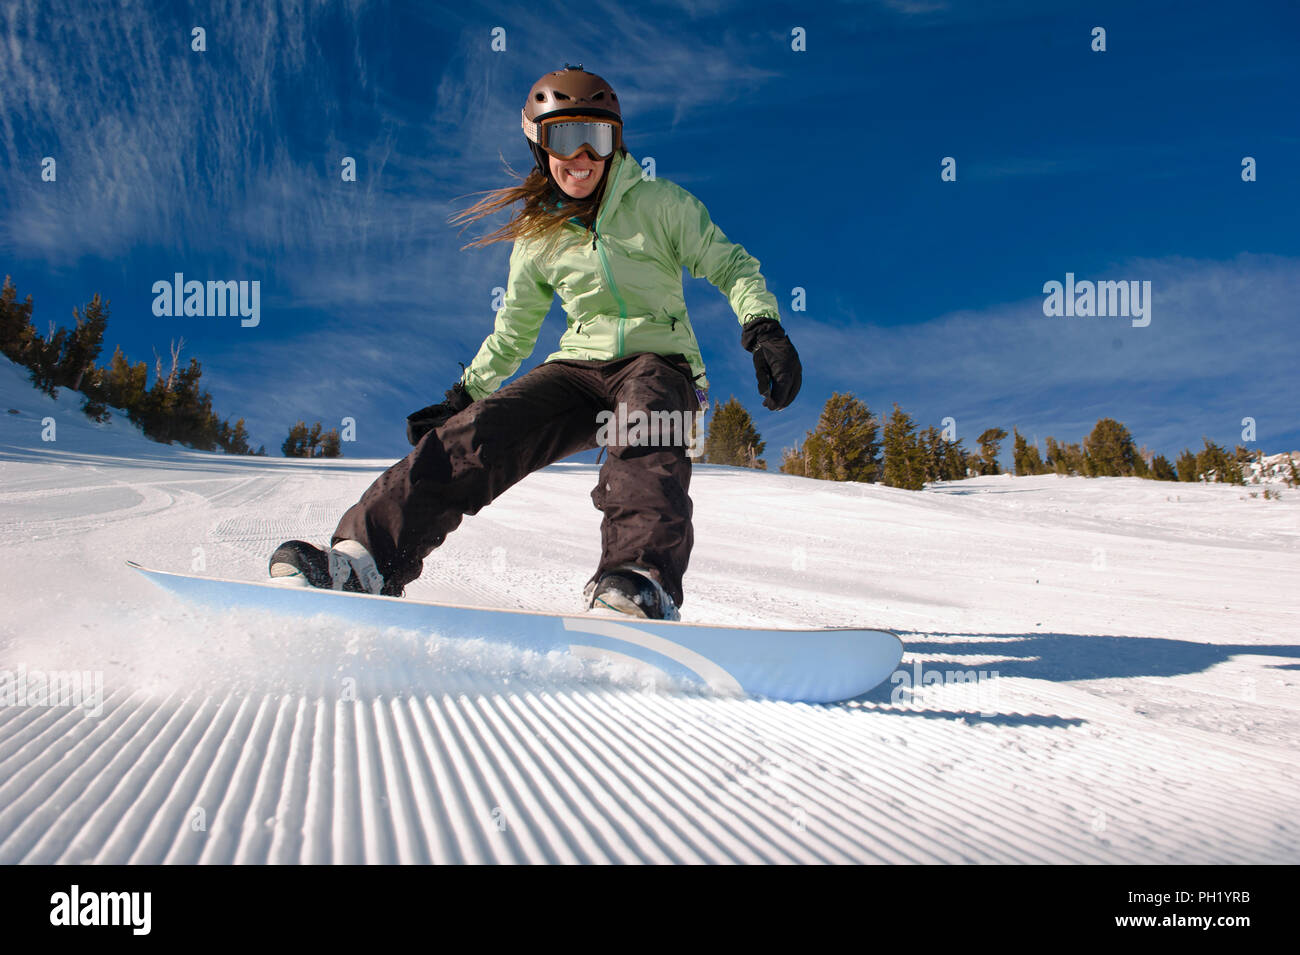 Groomers at Mt. Rose Ski Tahoe - 2012 Stock Photo